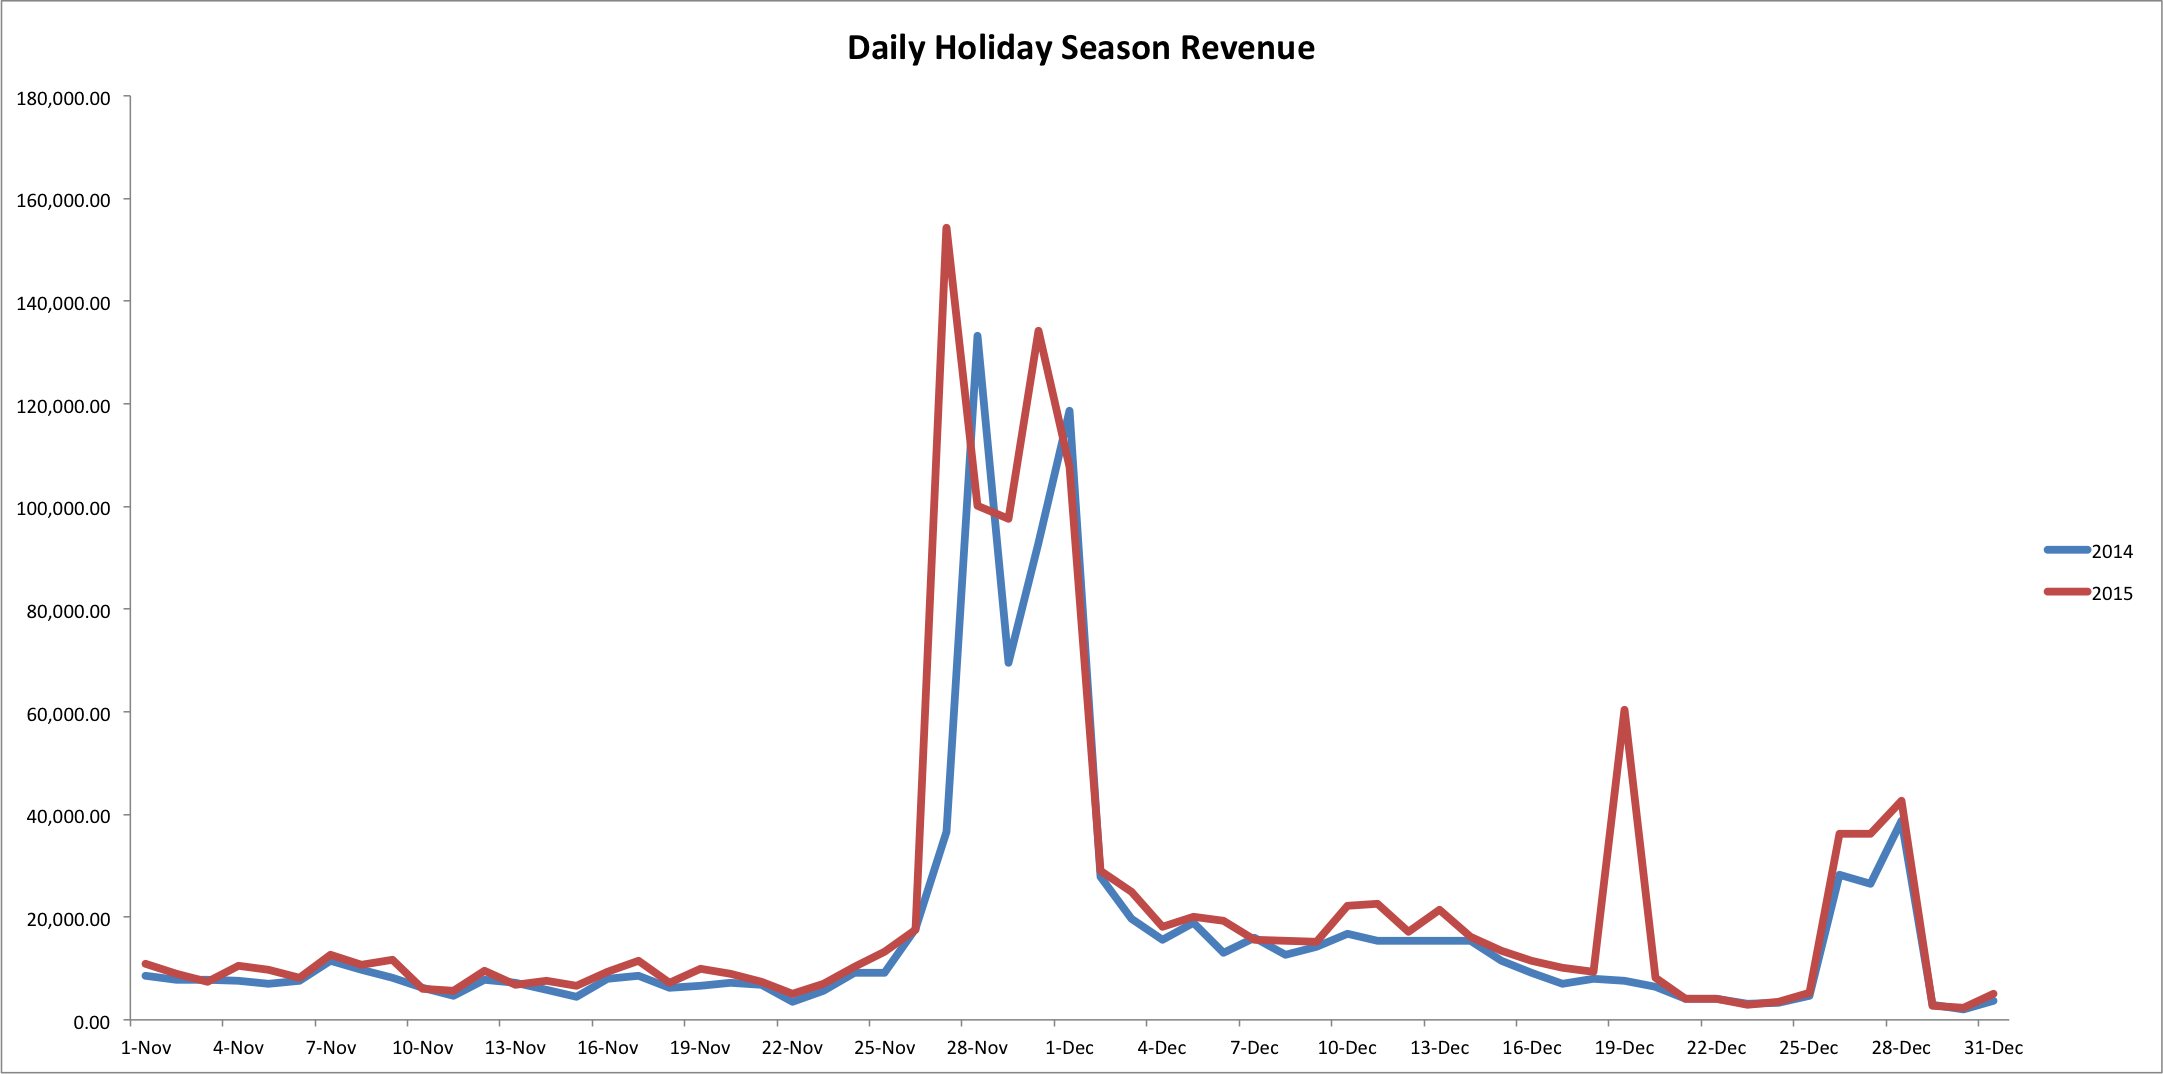 Daily holiday season revenue for 2014 and 2015